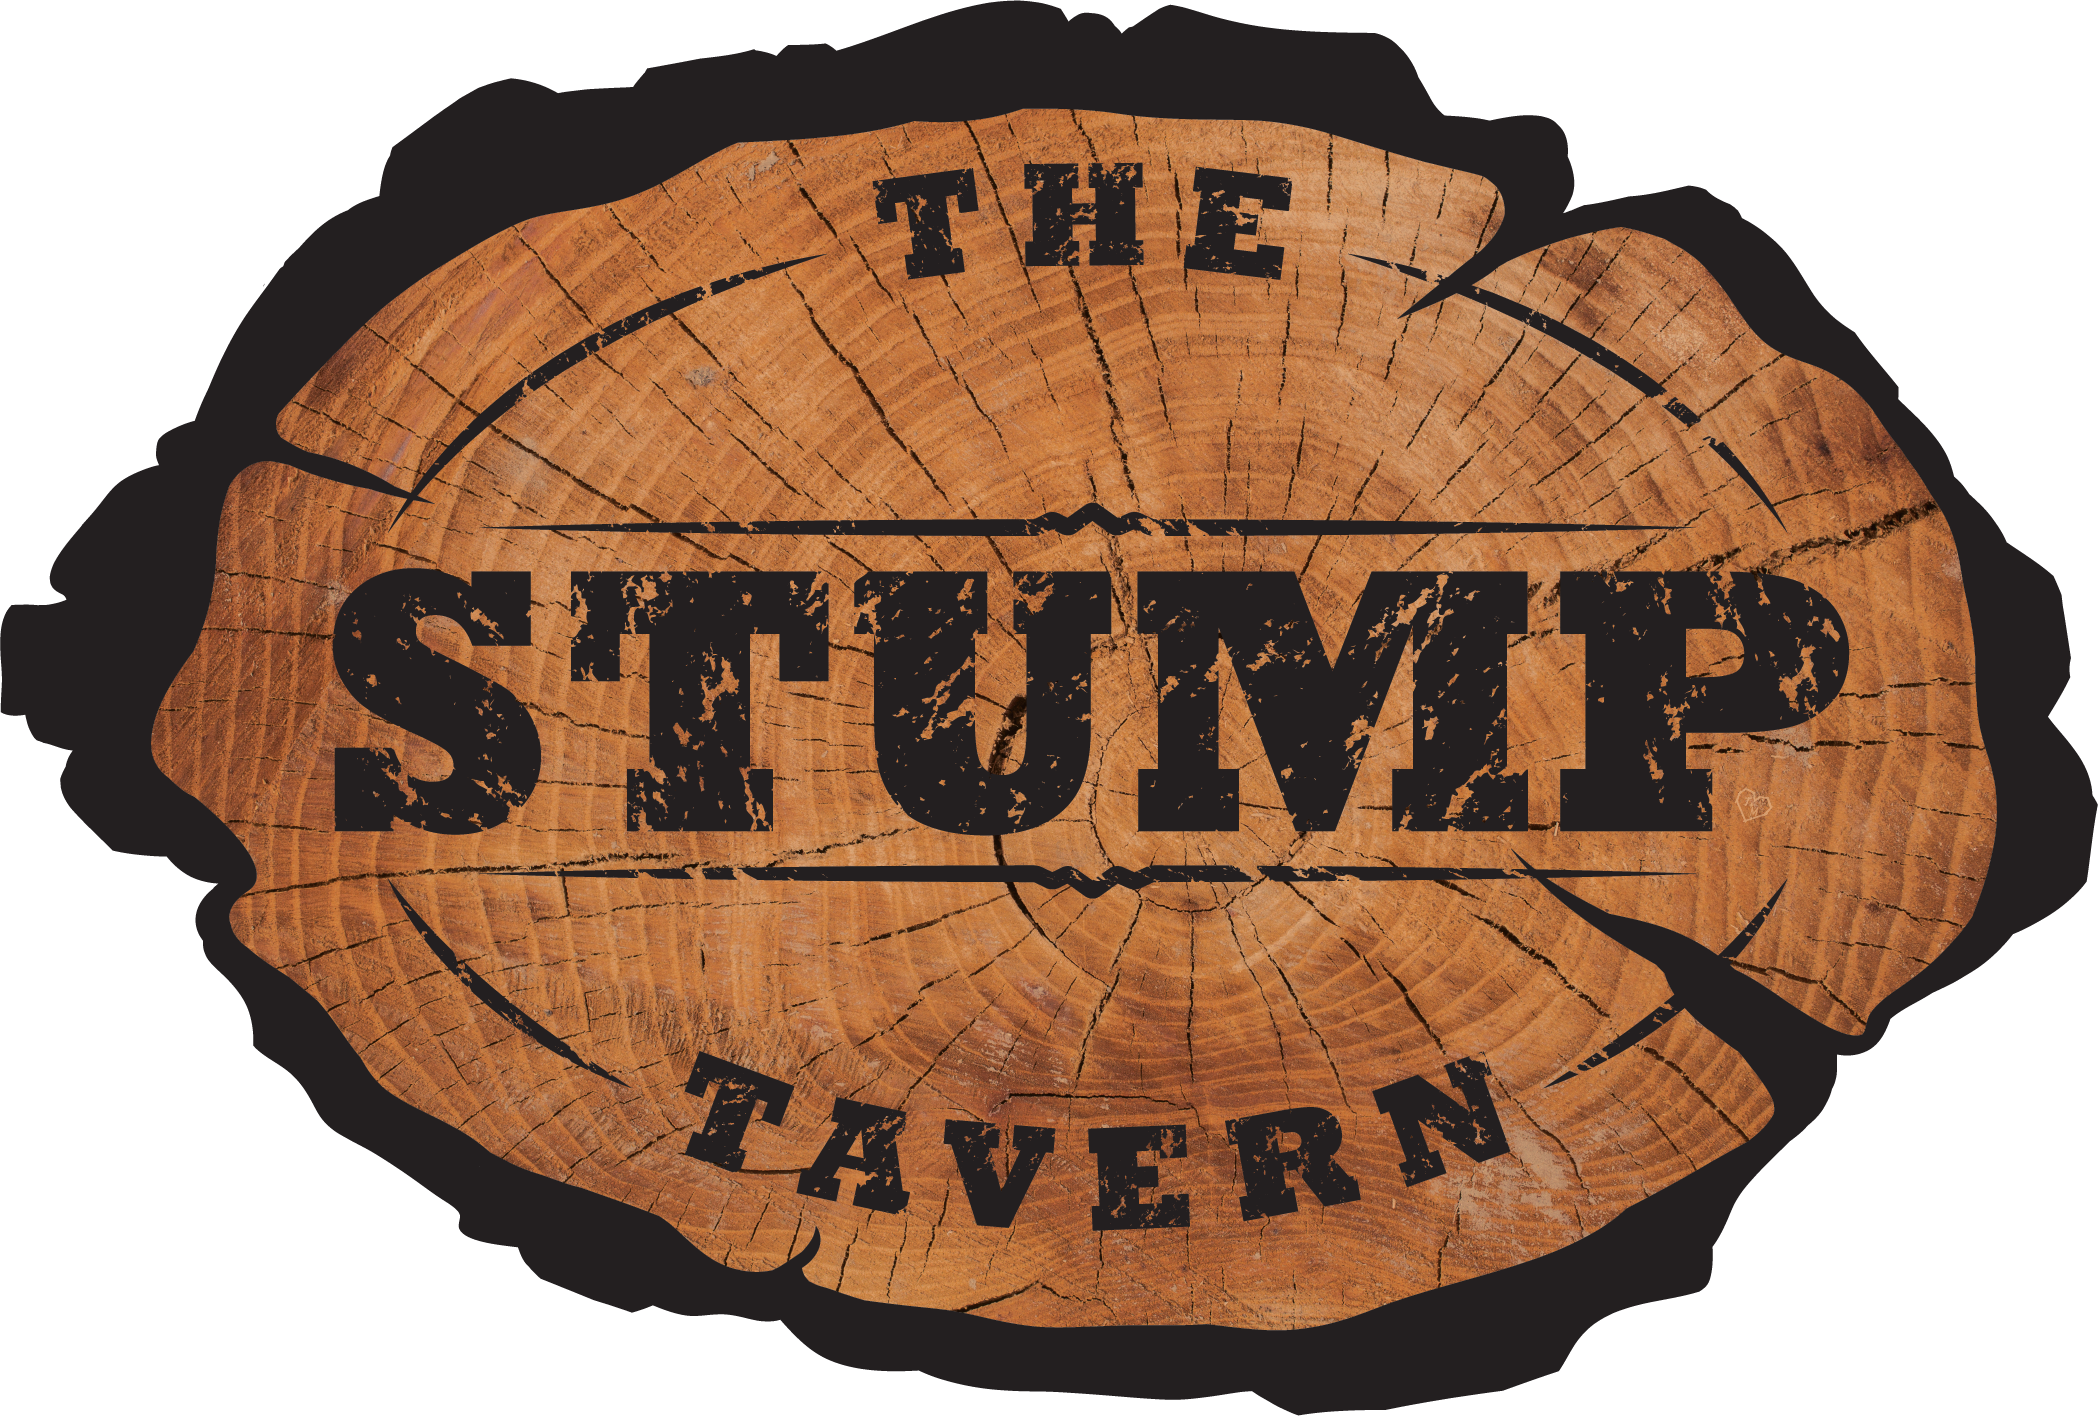 The Stump Tavern, 50 Fireside Gate - Wednesday evenings - $8 per pound with Gluten-Free options Available!